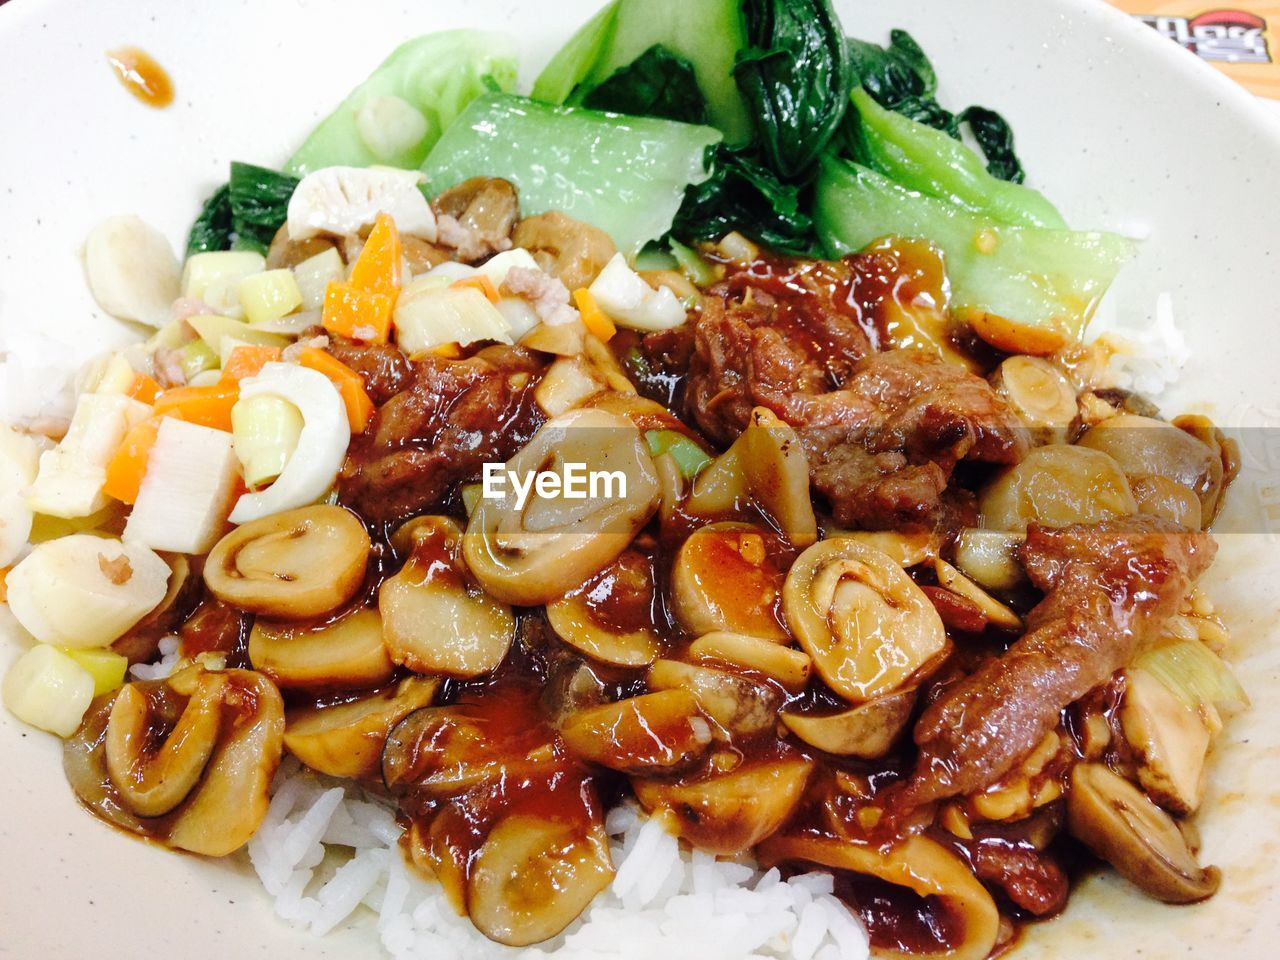 Close-up of beef and rice in plate